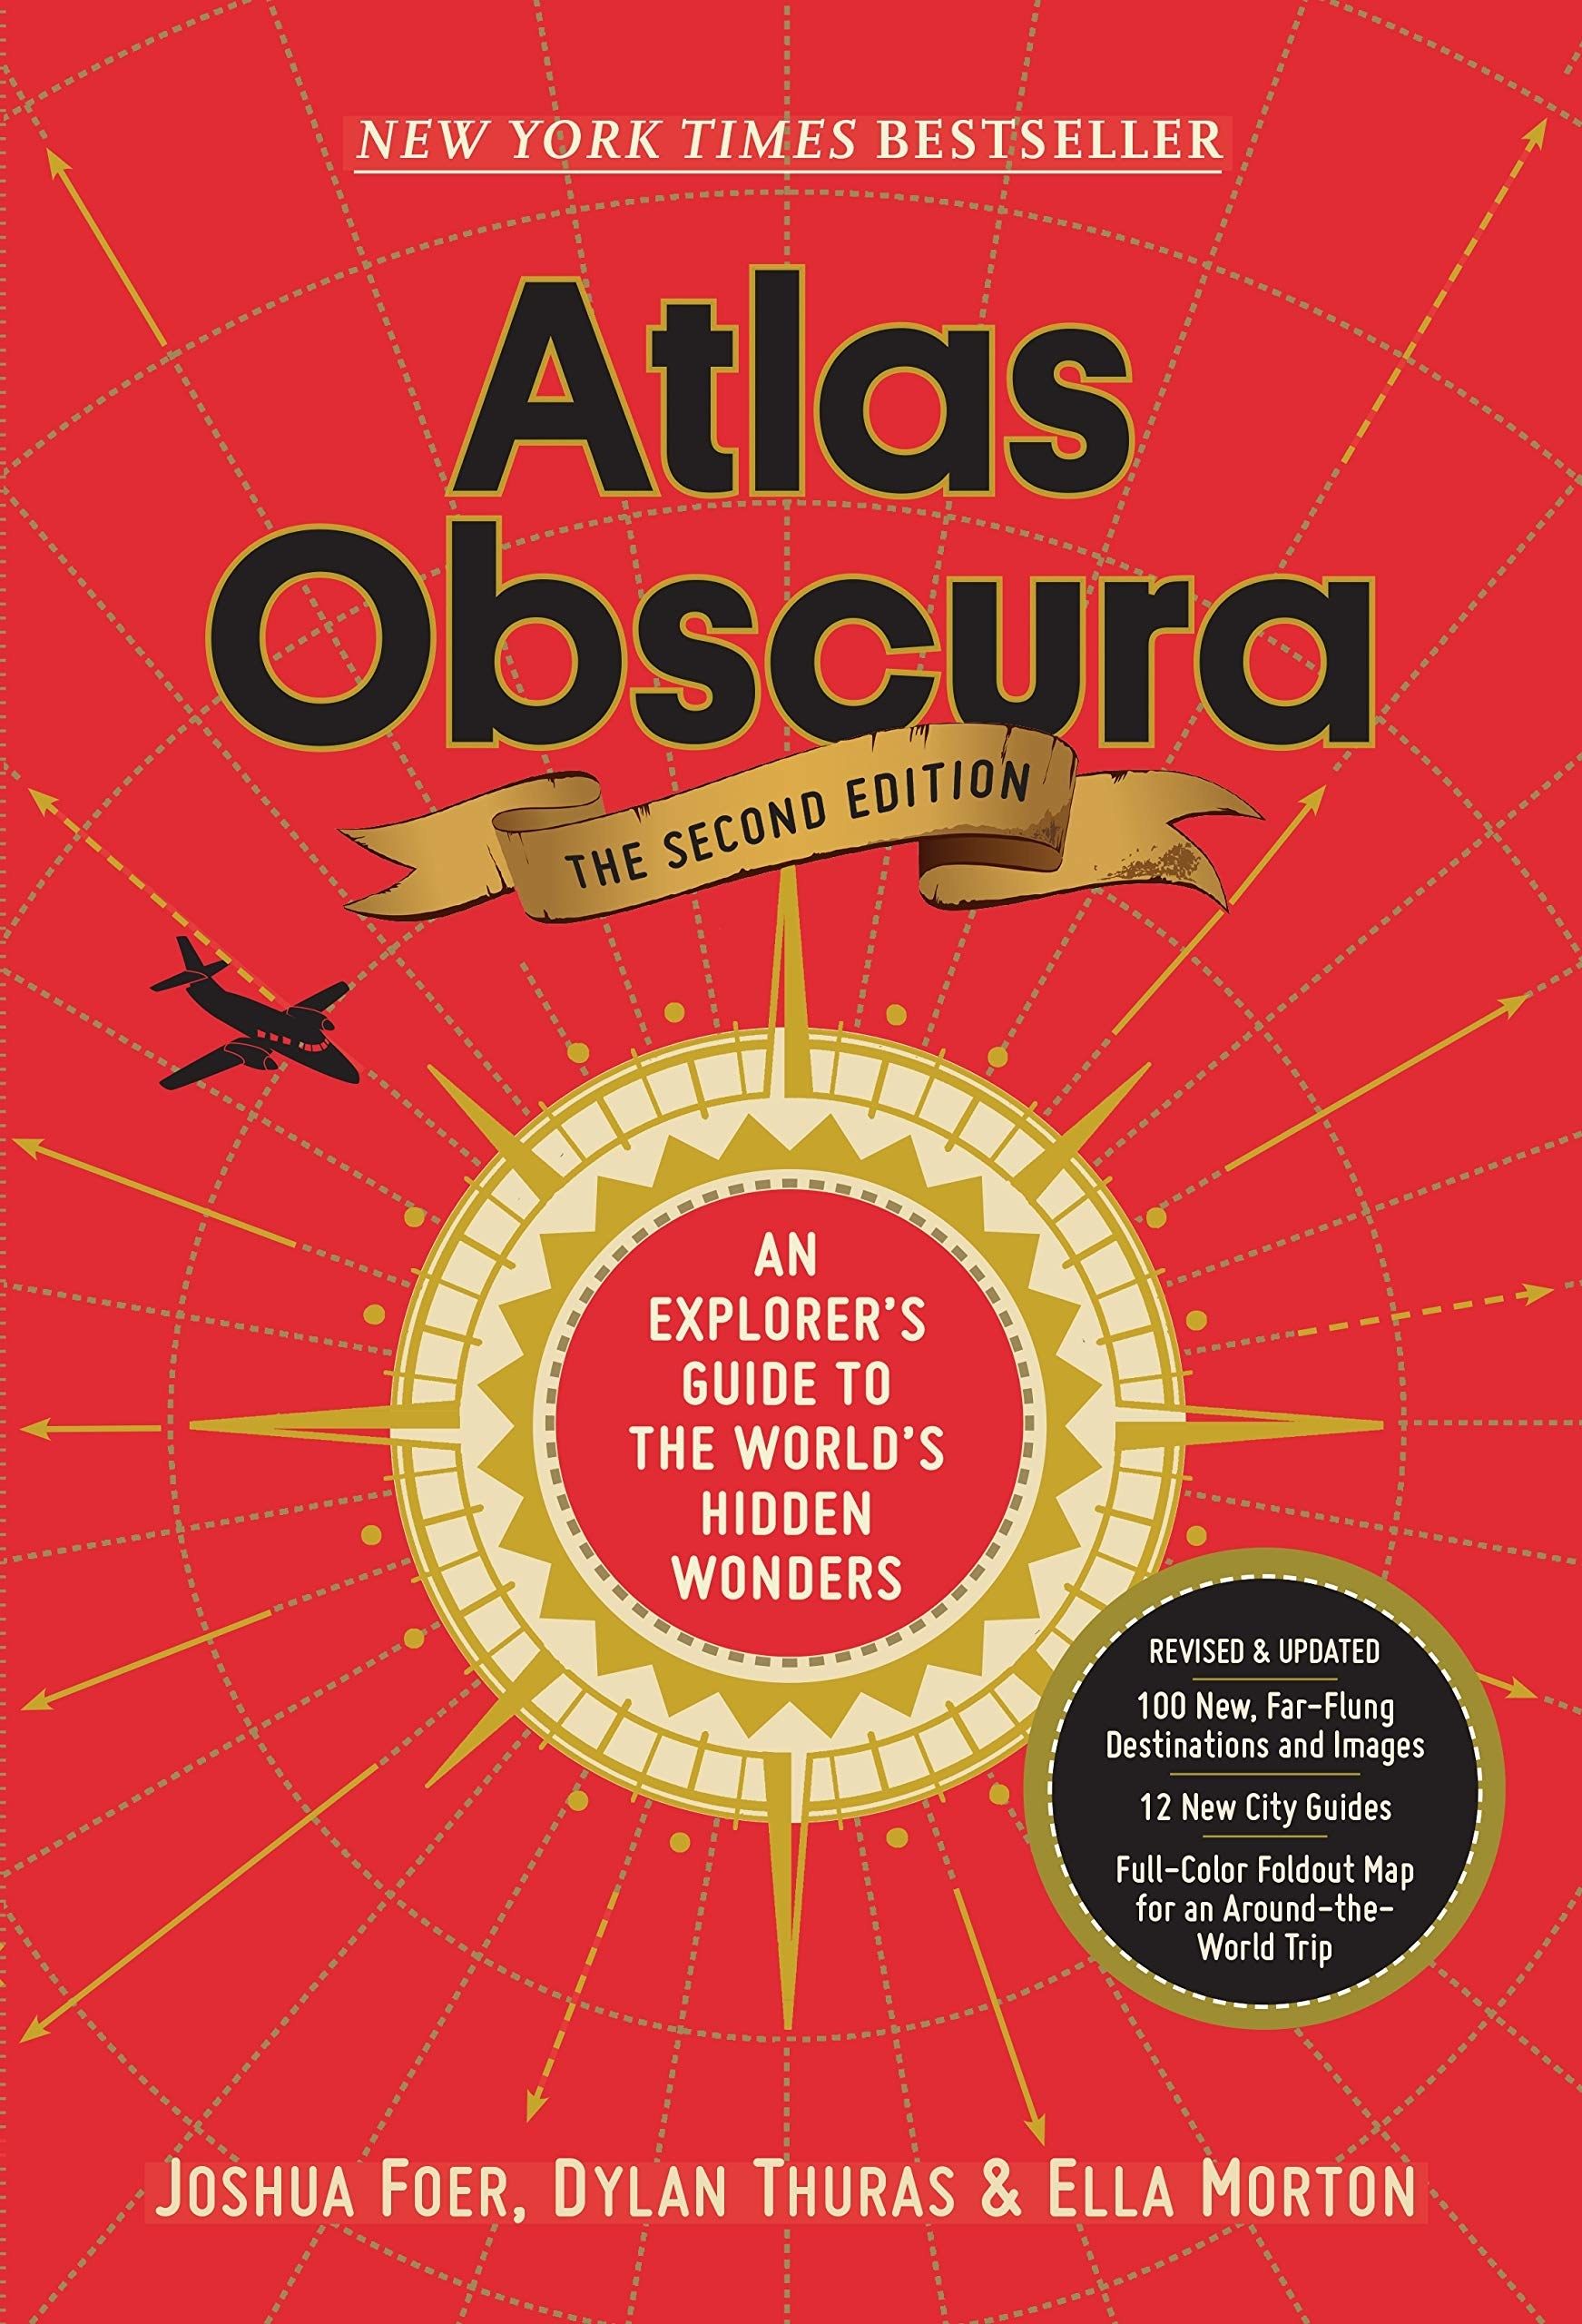 The cover of Atlas Obscura by Joshua Foer, Ella Morton, and Dylan Thuras